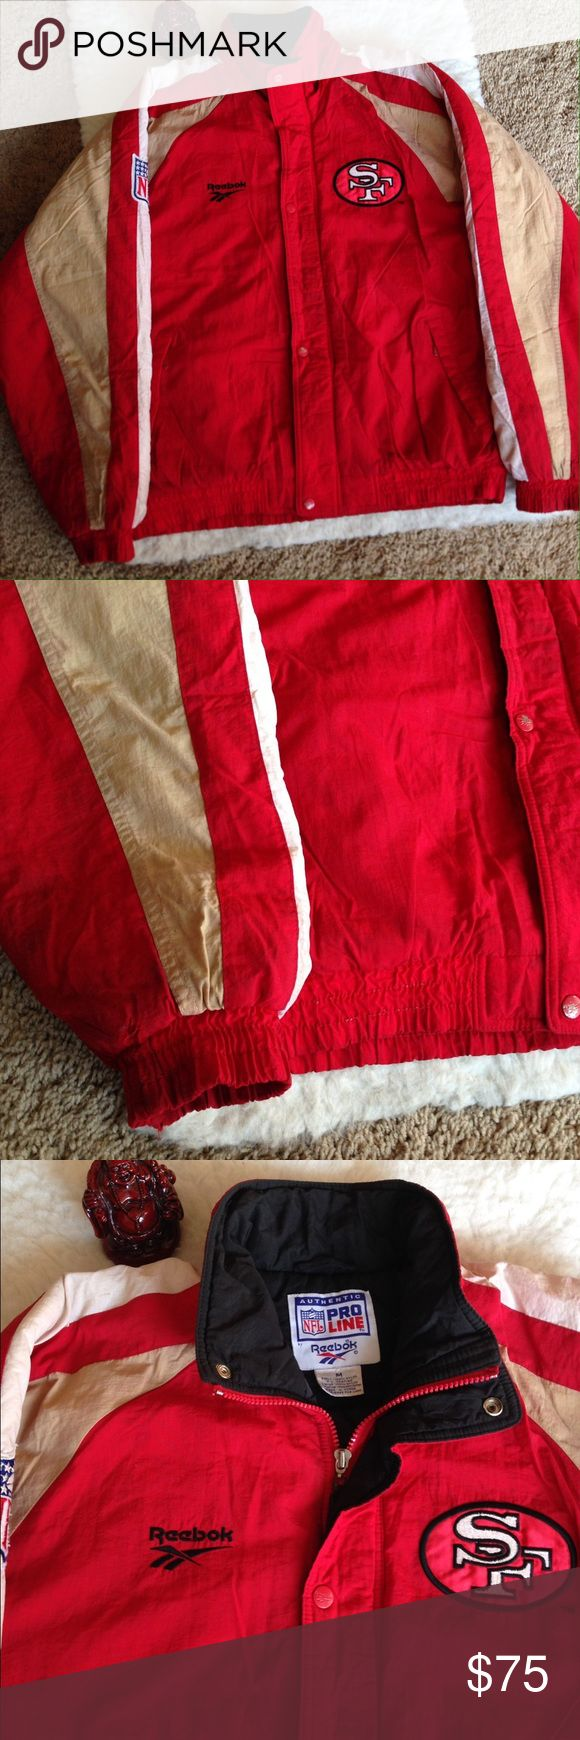 Vintage Pro line Reebok San Francisco 49ers Jacket Vintage Pro line Reebok San Francisco 49ers Jacket Size Medium in men Color: Red, Tan, white, and black. SF design on front and back. Hole on sleeve. Zipper and buttons. Red Stains on top. Reebok Jackets & Coats Puffers